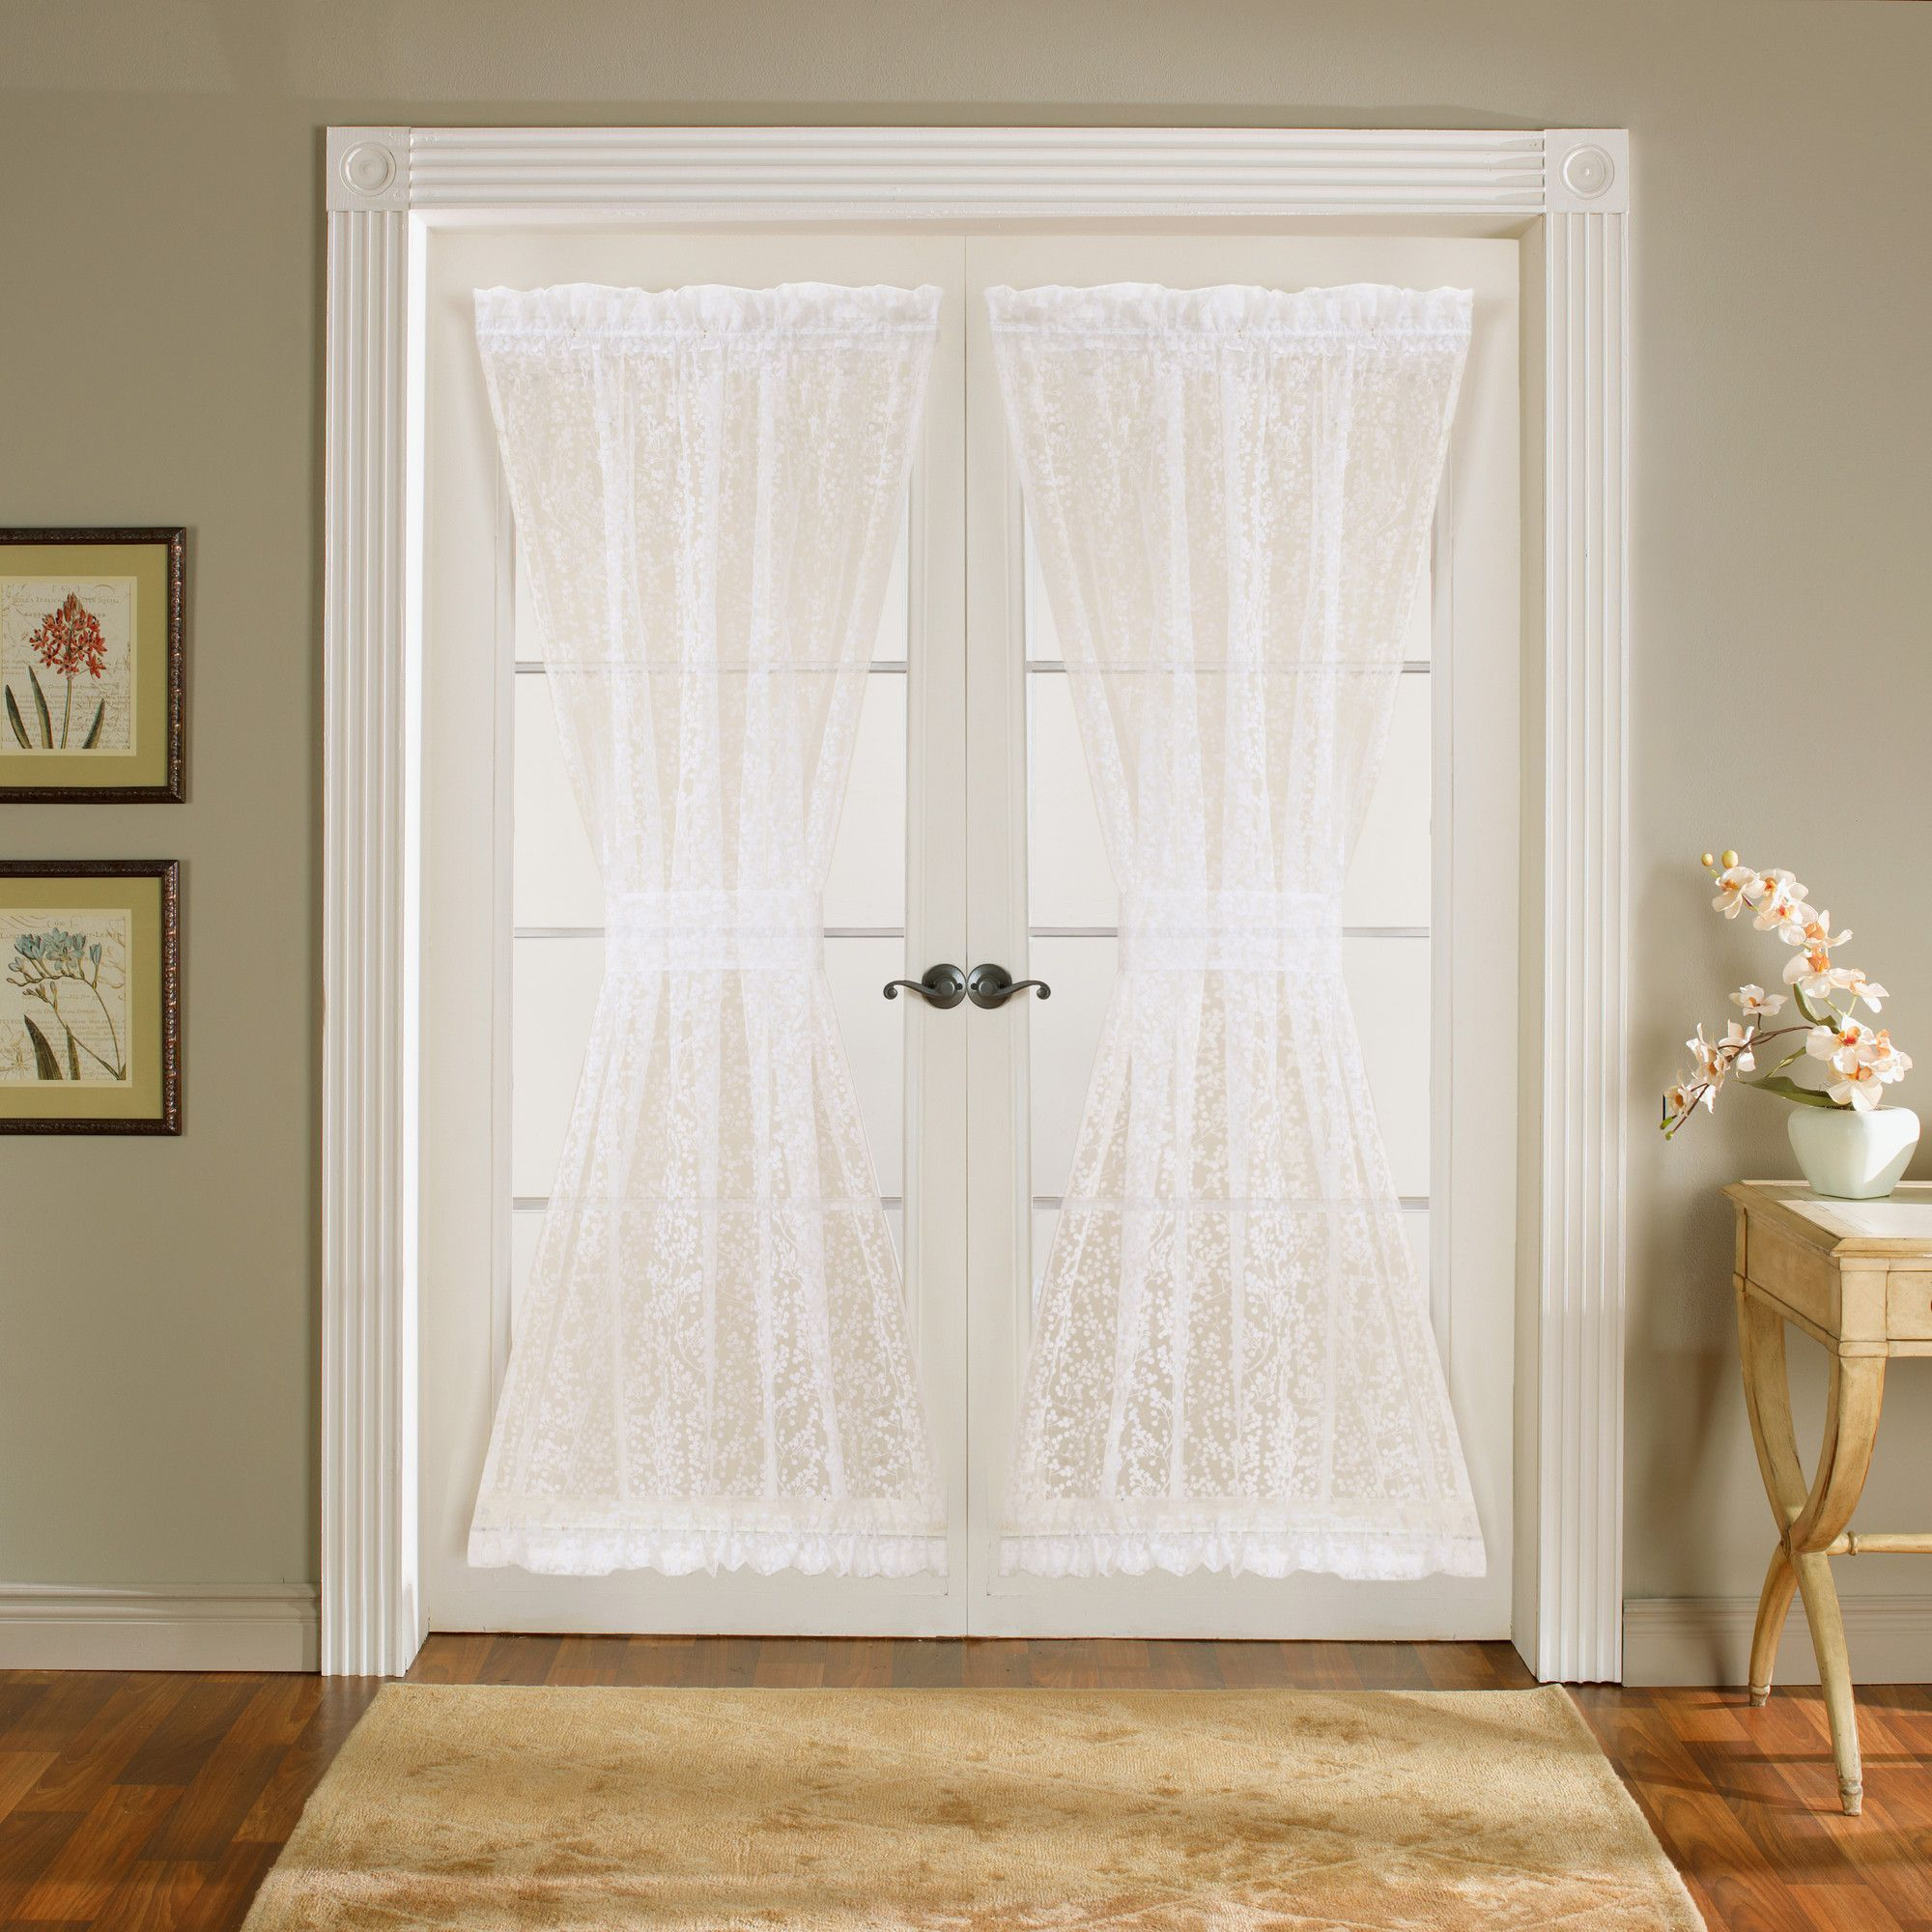 curtain doorins inspirations curtains of home door jcpenney doors with velcro unbelievable decor country full photos french size panel for walmart blackout shades